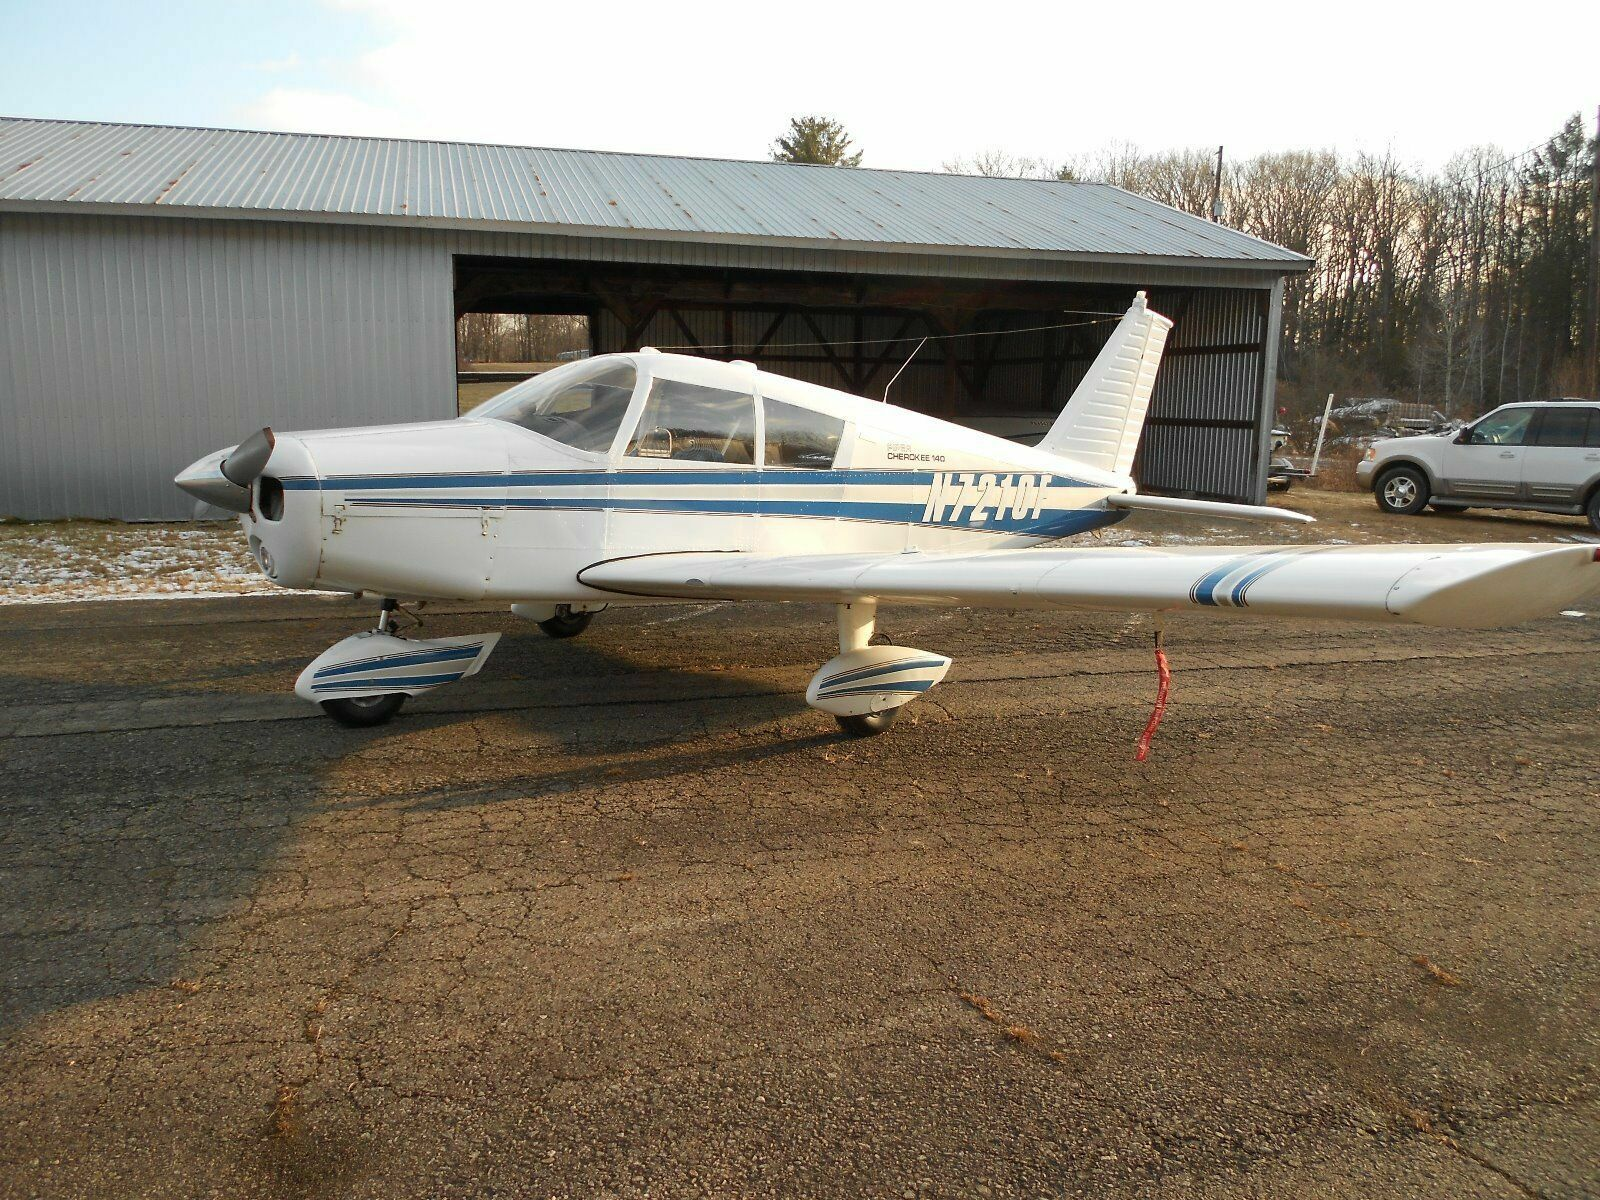 hangared 1968 Piper PA 28 140 Cherokee aircraft for sale